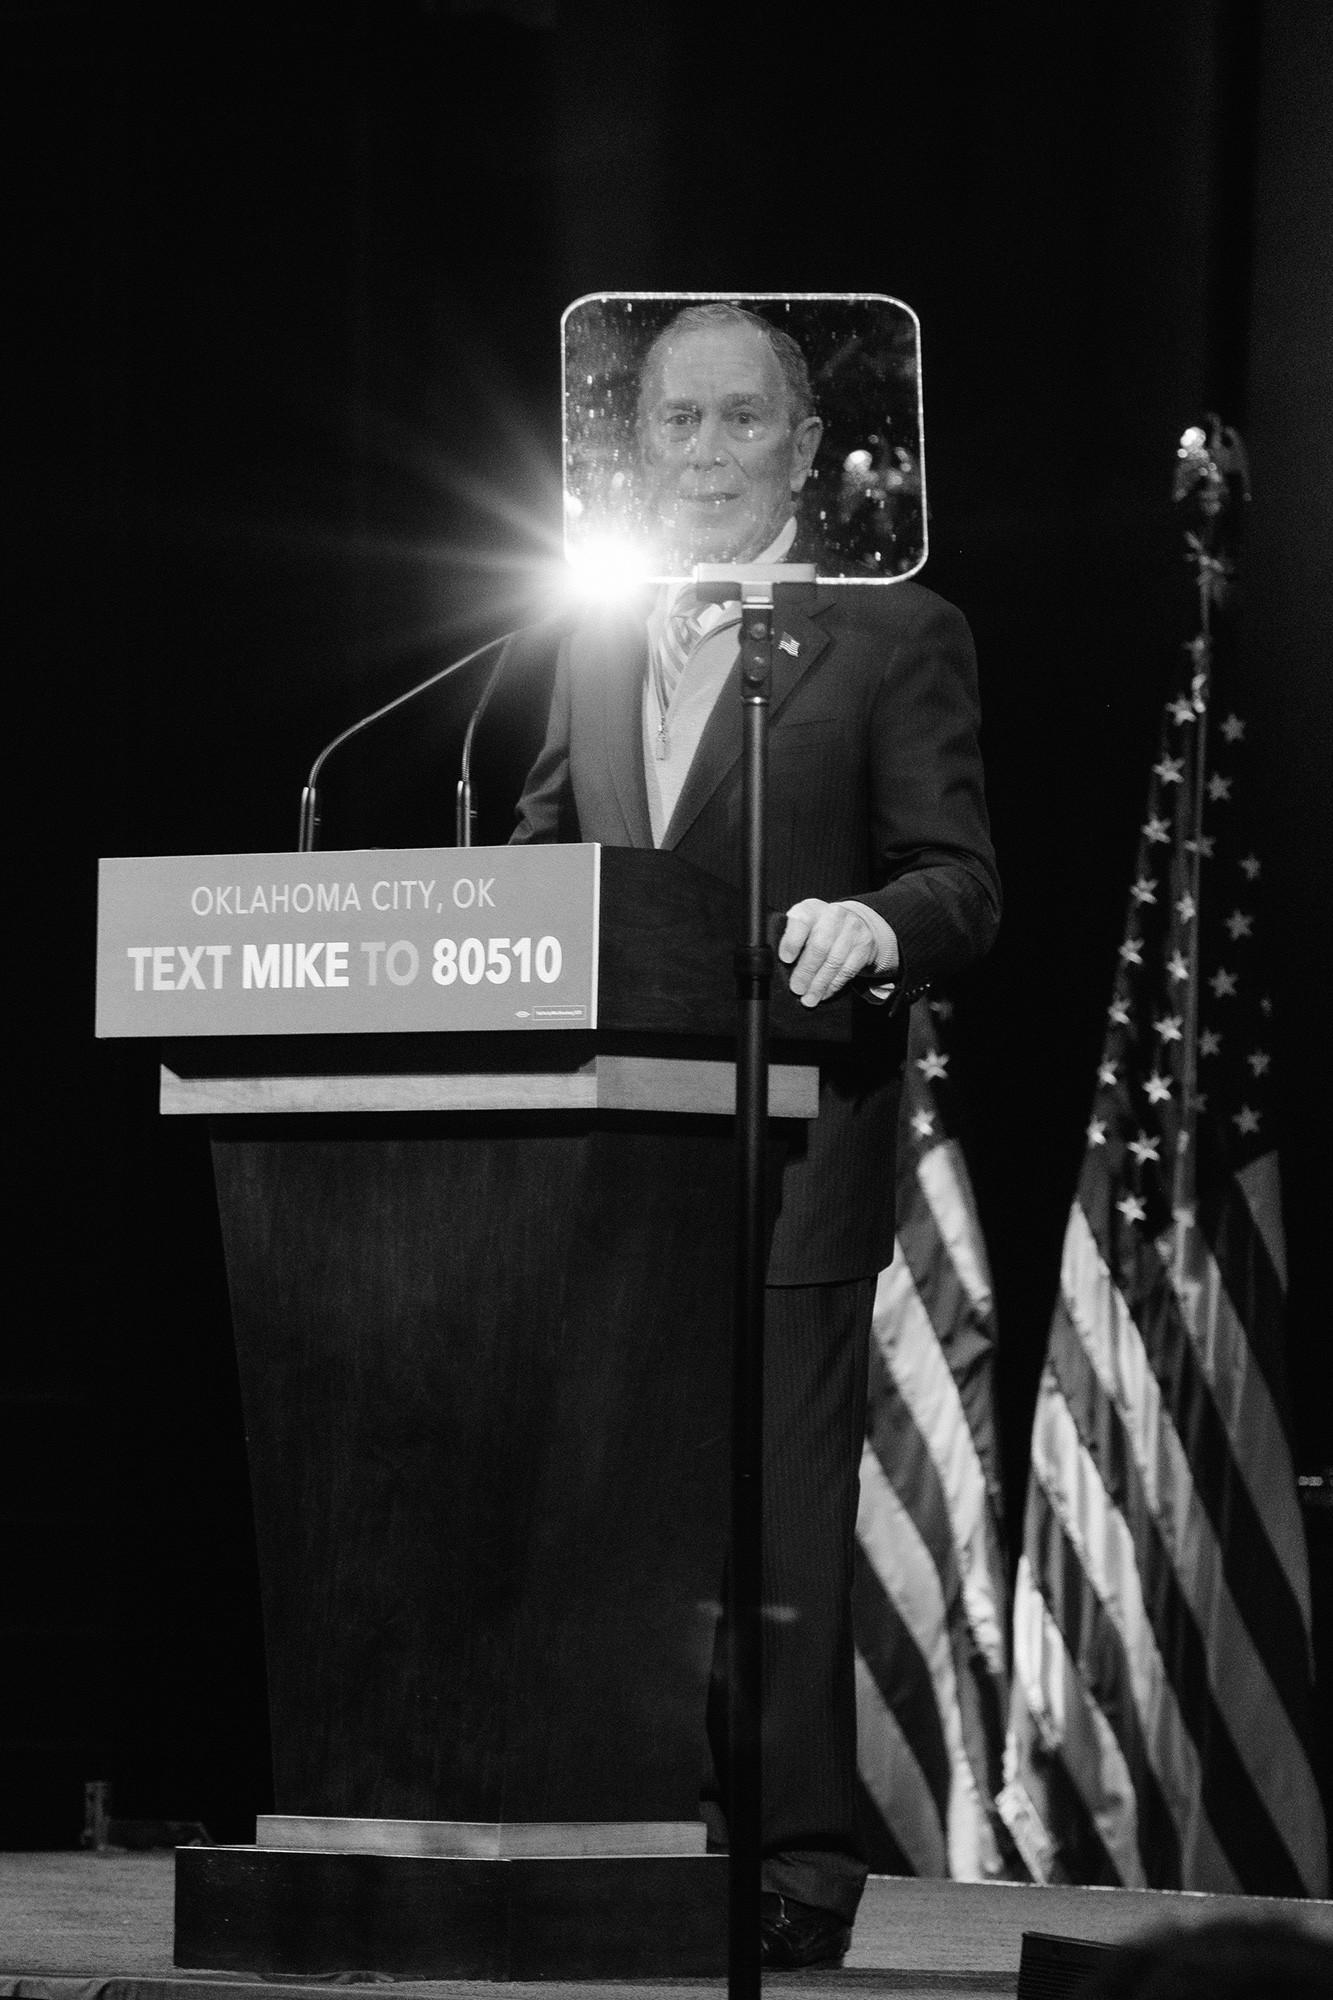 Bloomberg speaks at a rally in Oklahoma City on Feb. 27.